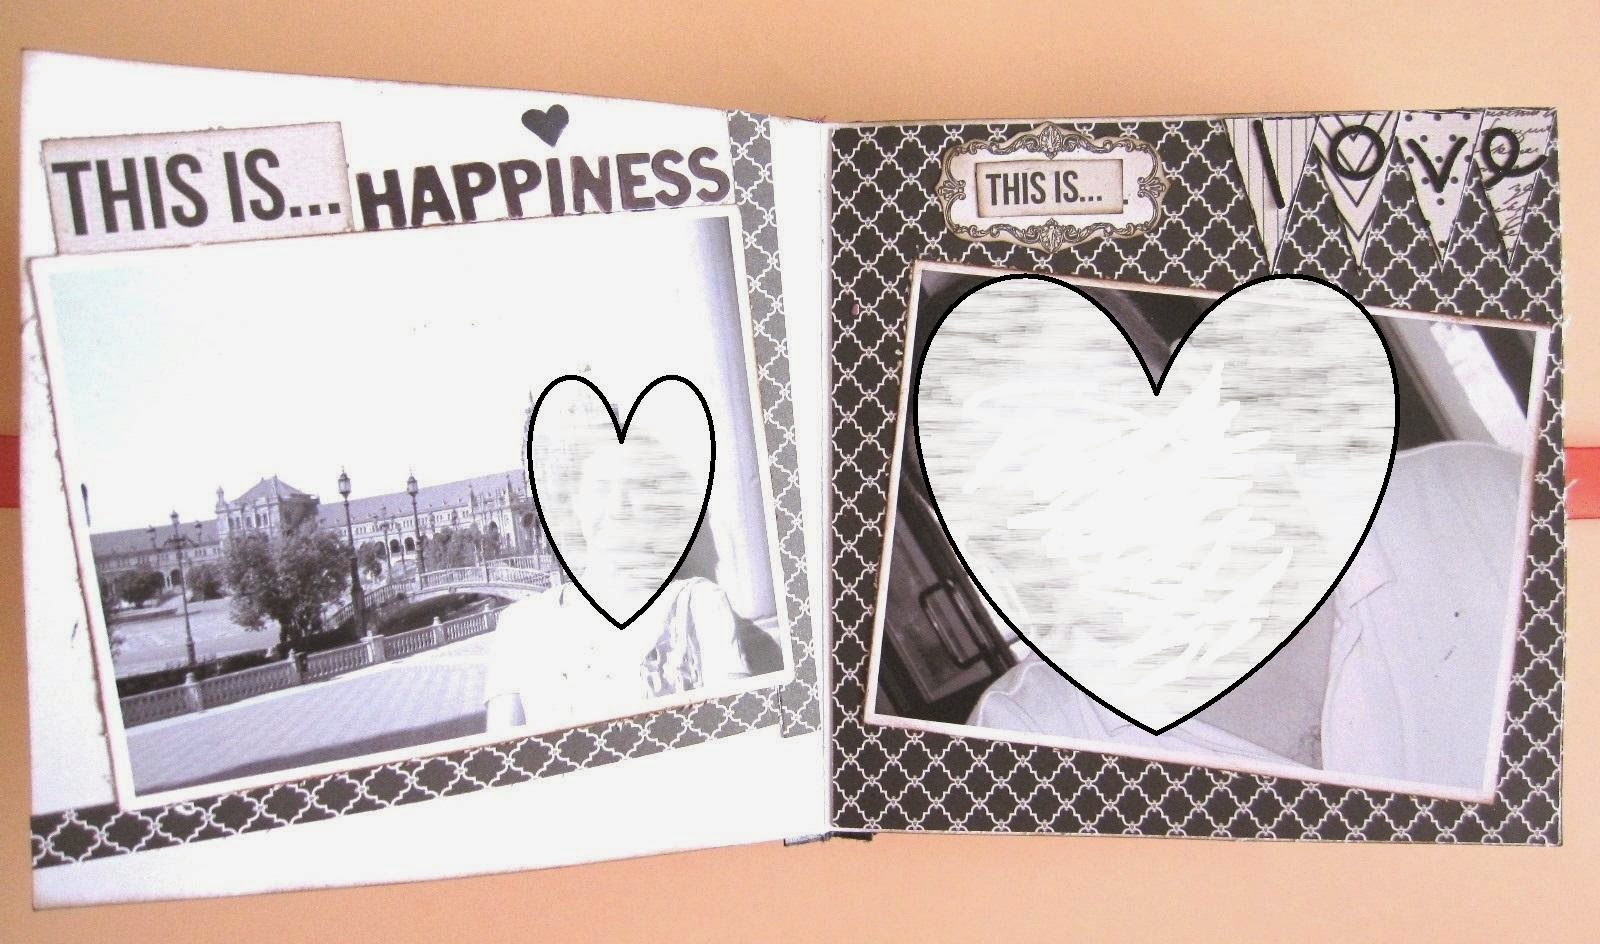 foto 6 decoración interior LOVE mini-album, interior tarjeta LOVE decorada en blanco y negro con mats y banderines